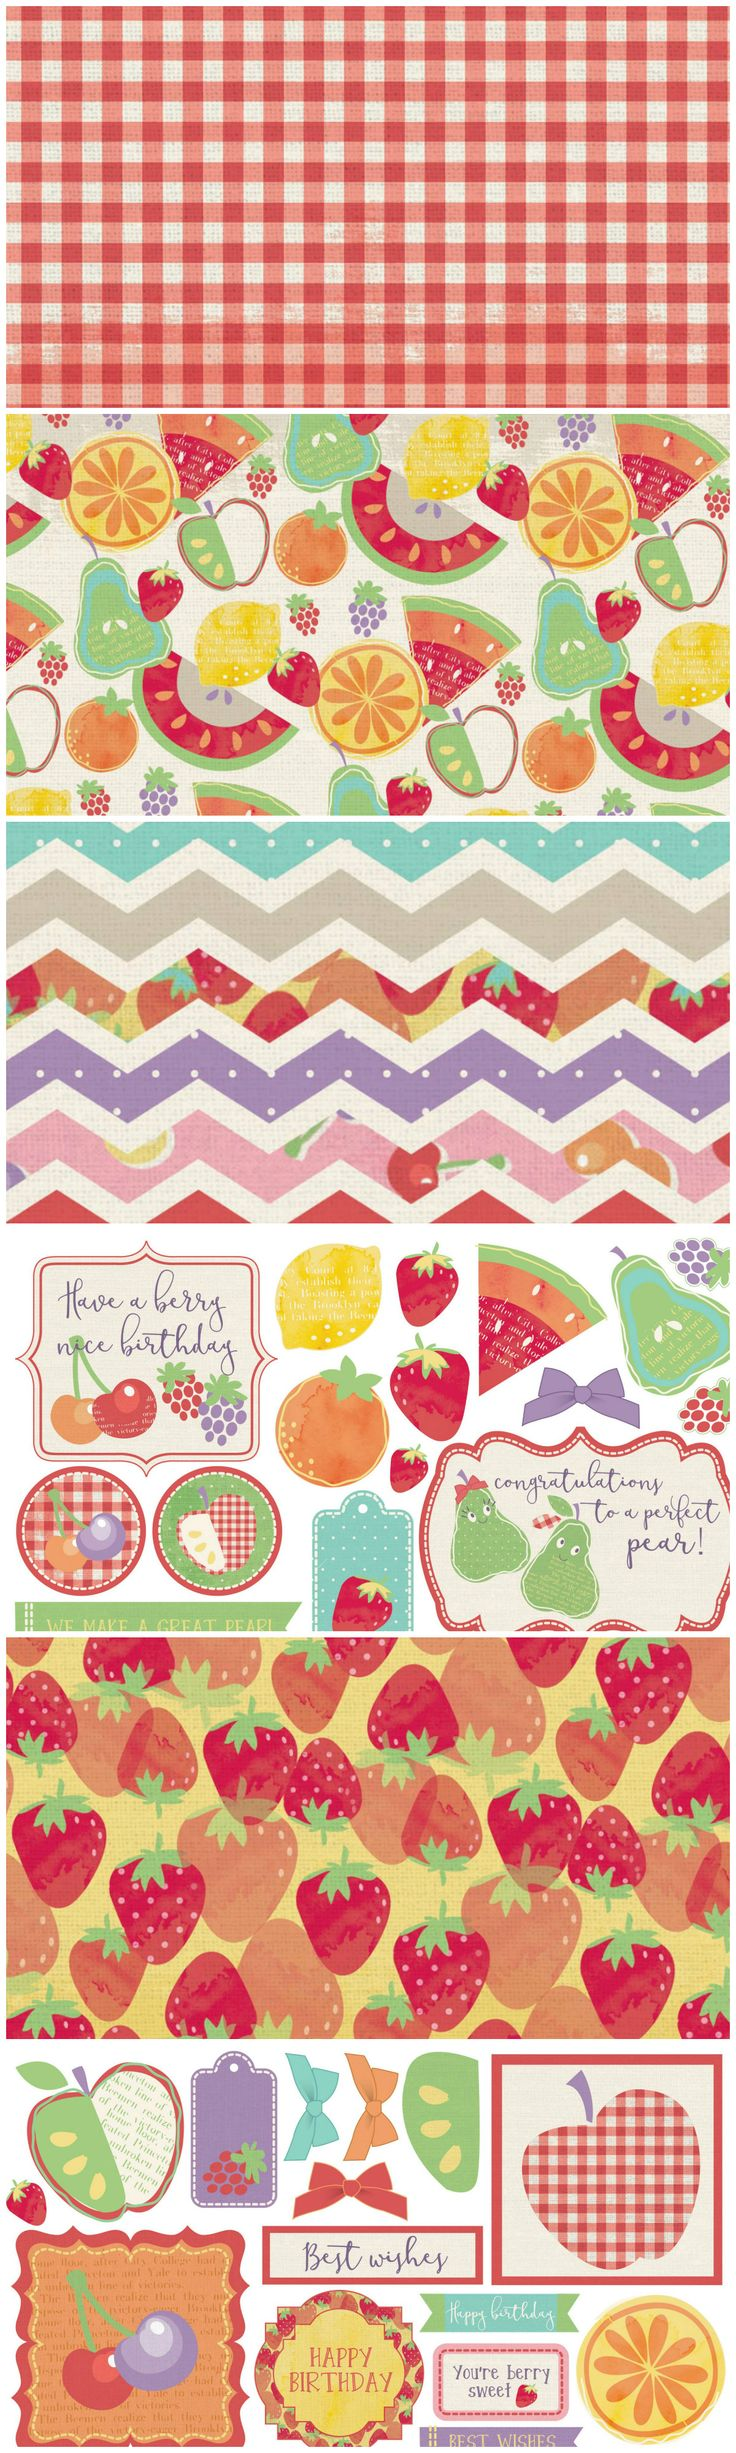 Free Fruit Salad Digital Kit - download from the Papercraft Inspirations website!